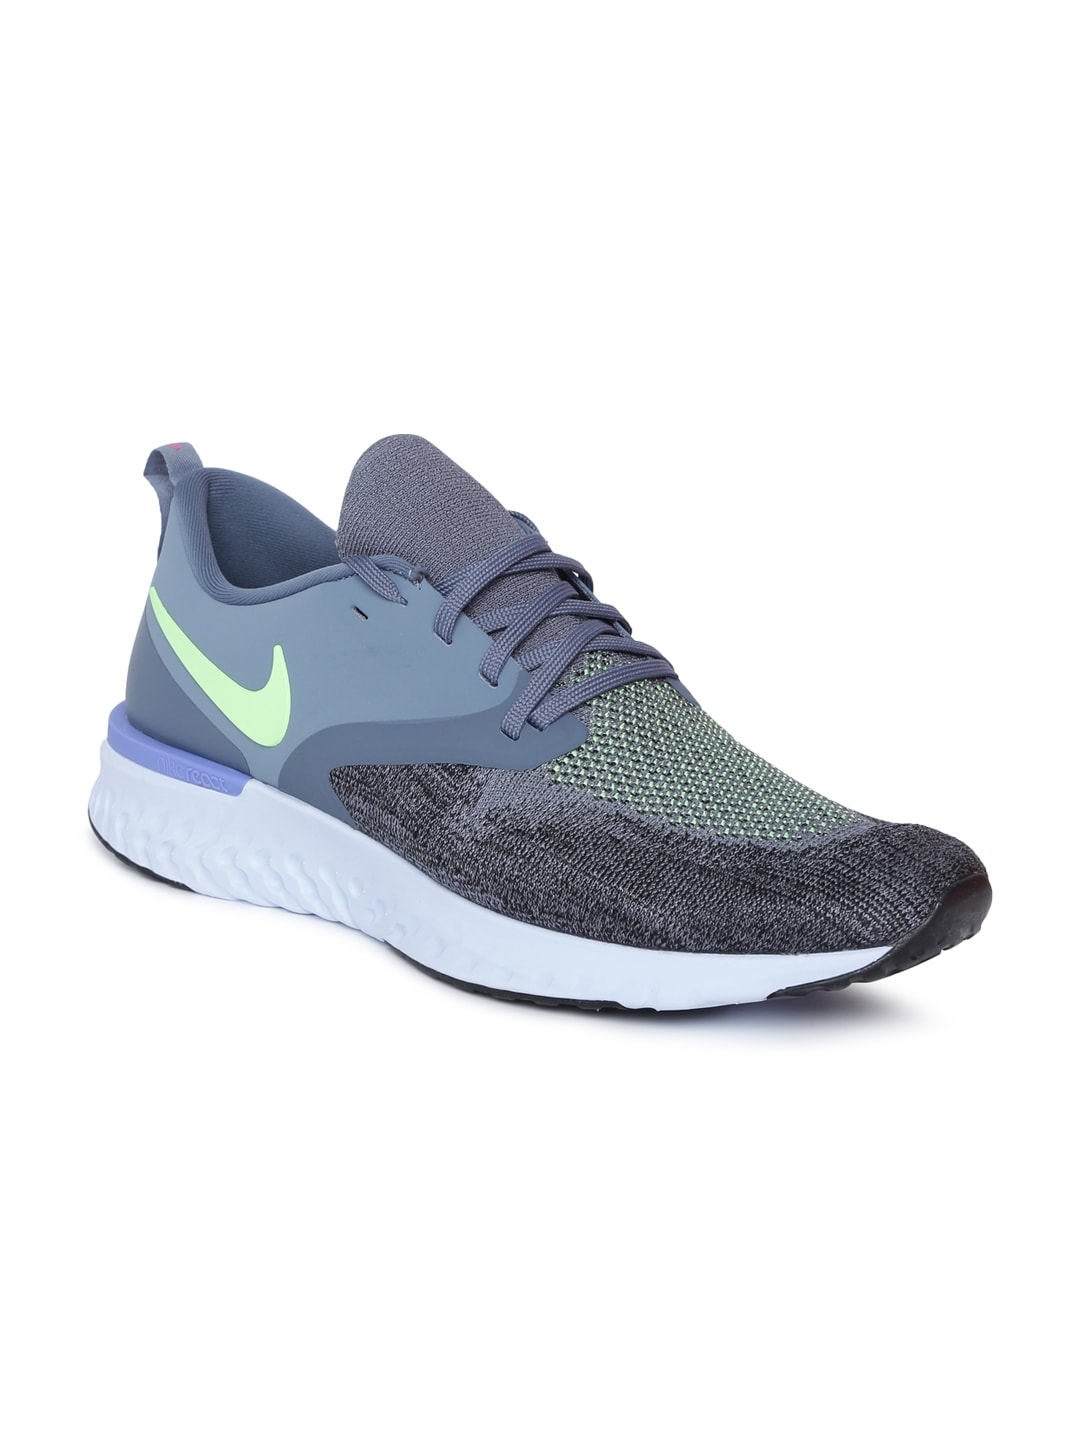 timeless design af2e3 d75ac Nike Football Shoes - Buy Nike Football Shoes Online At Myntra